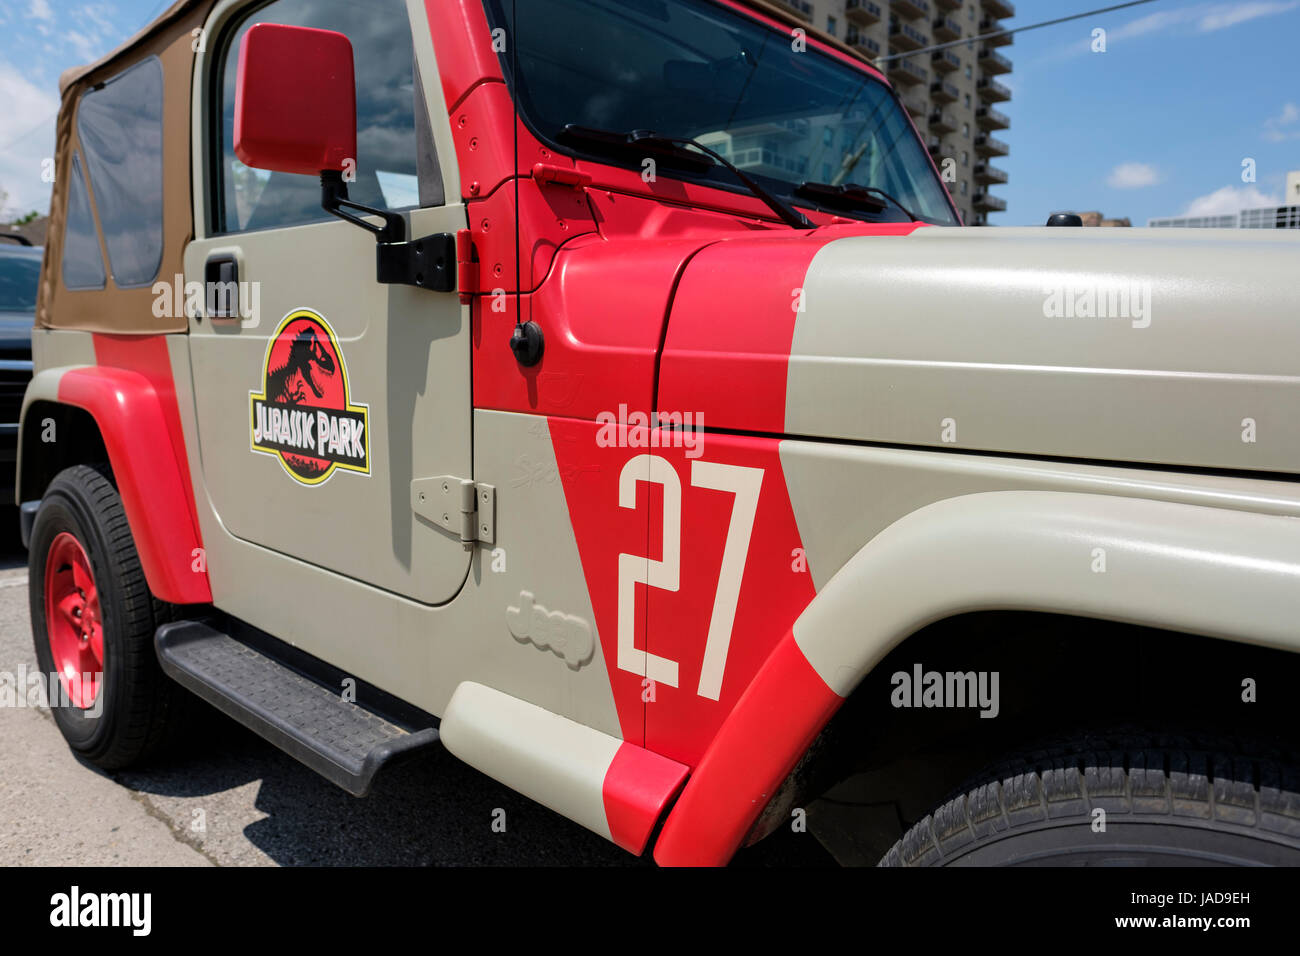 Wonderful Custom painted Jurassic Park Jeep, Jurassic Park logo, 4x4 vehicle  SU84